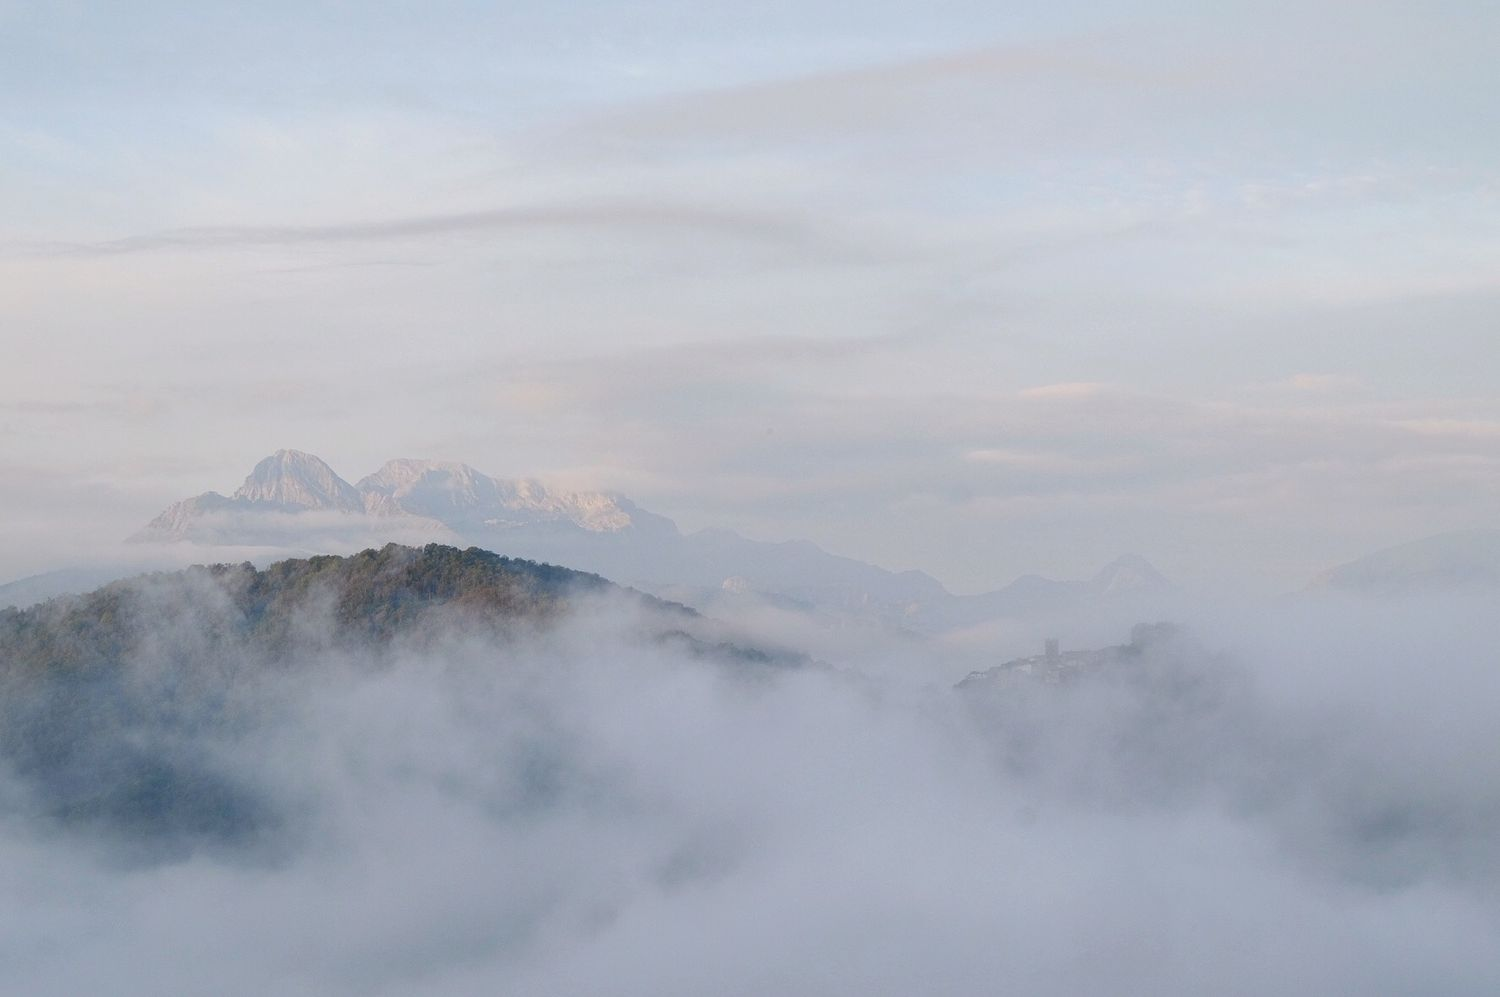 clouds hang in the valley in Garfagnana